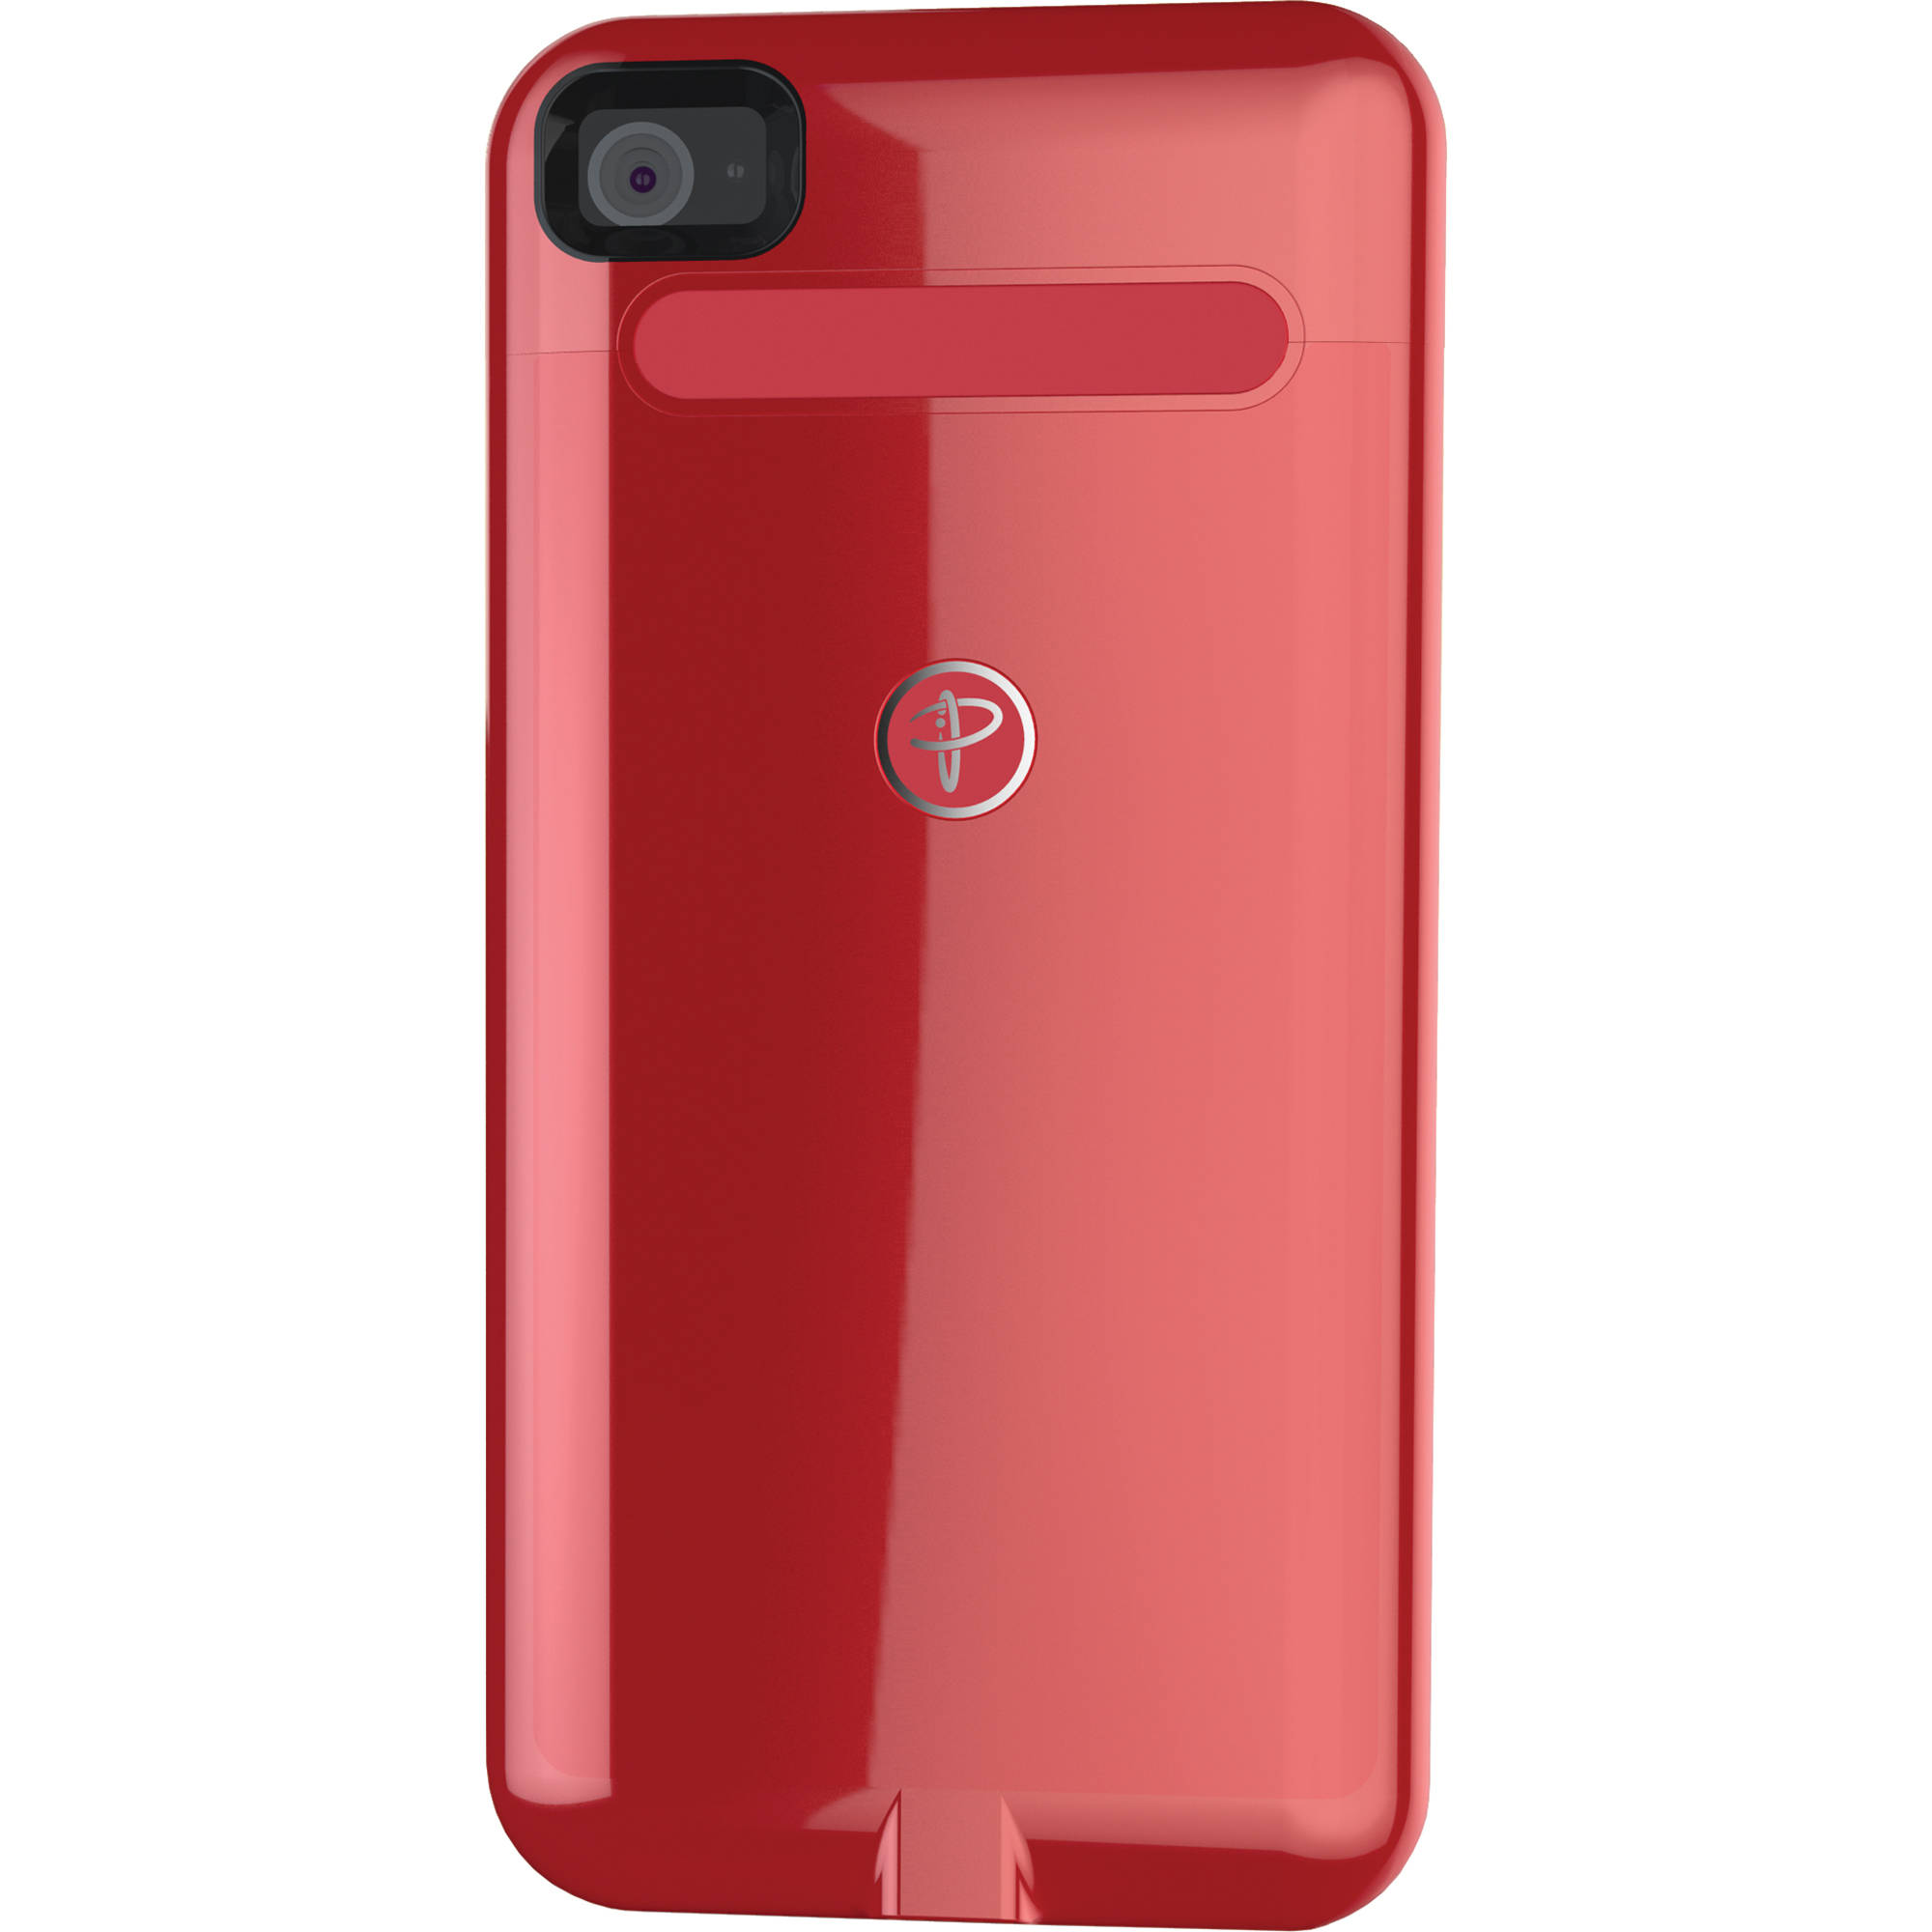 Case Design cell phone accessories cases : Duracell Powermat Wireless Case for iPhone 4/4S (Red) 84878893